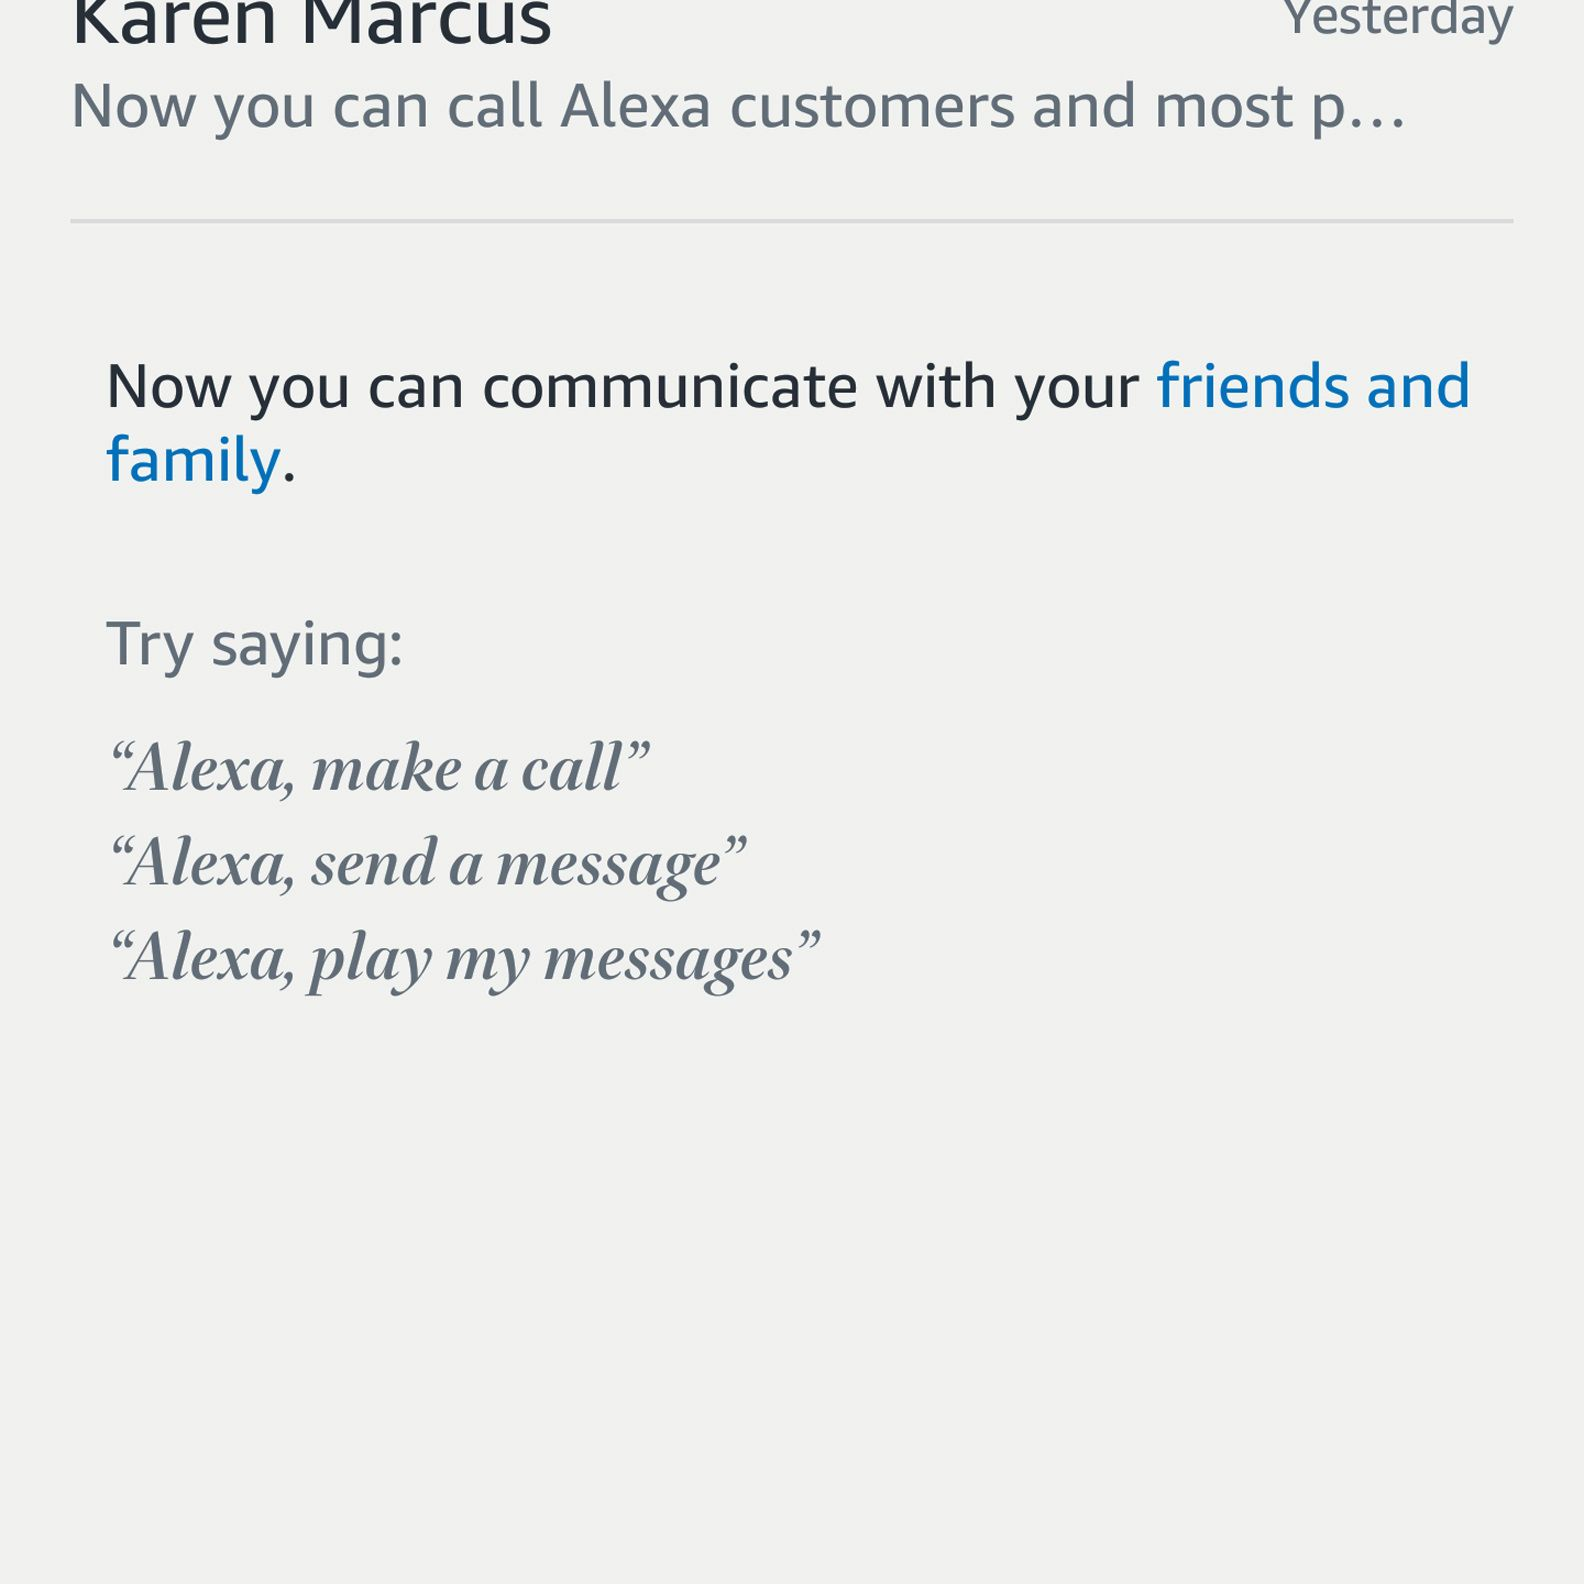 How to Add Contacts to Alexa